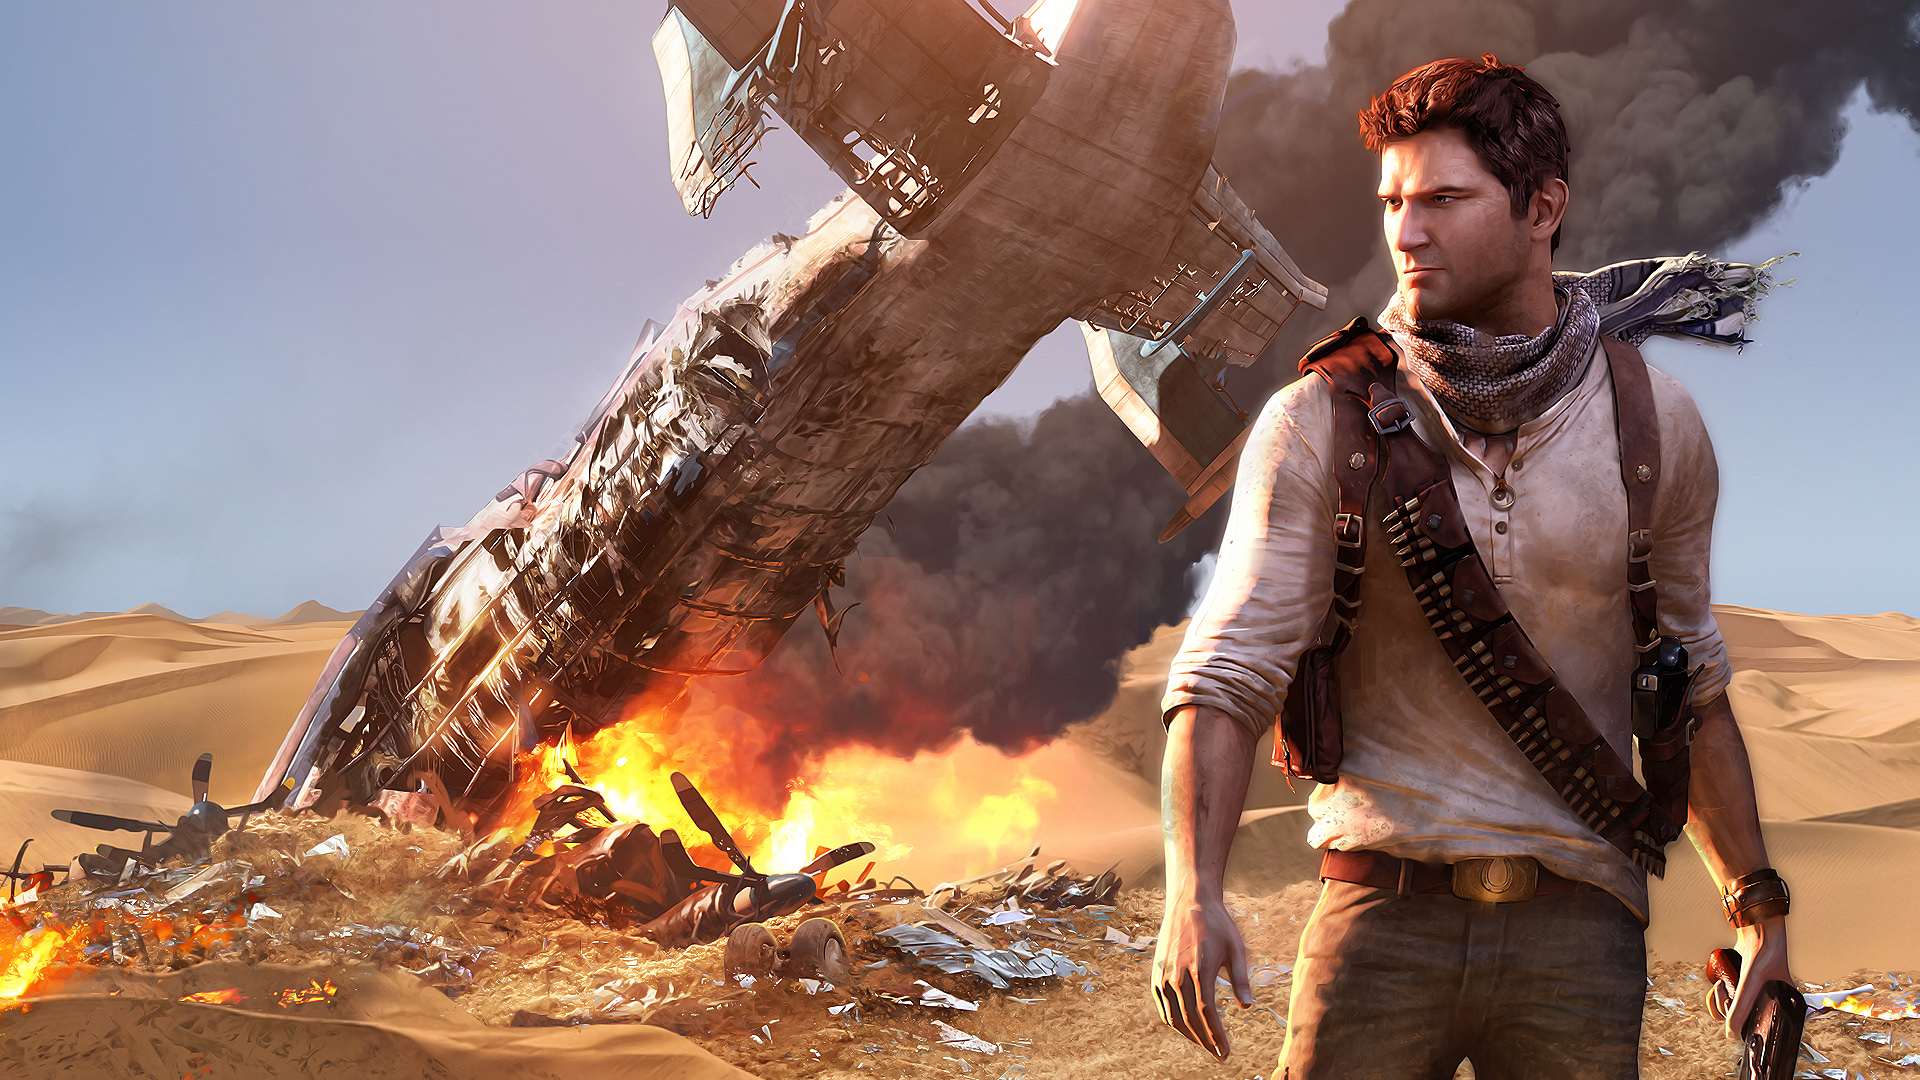 Il nuovo Spider-Man Tom Holland interpreterà Nathan Drake nel film di Uncharted